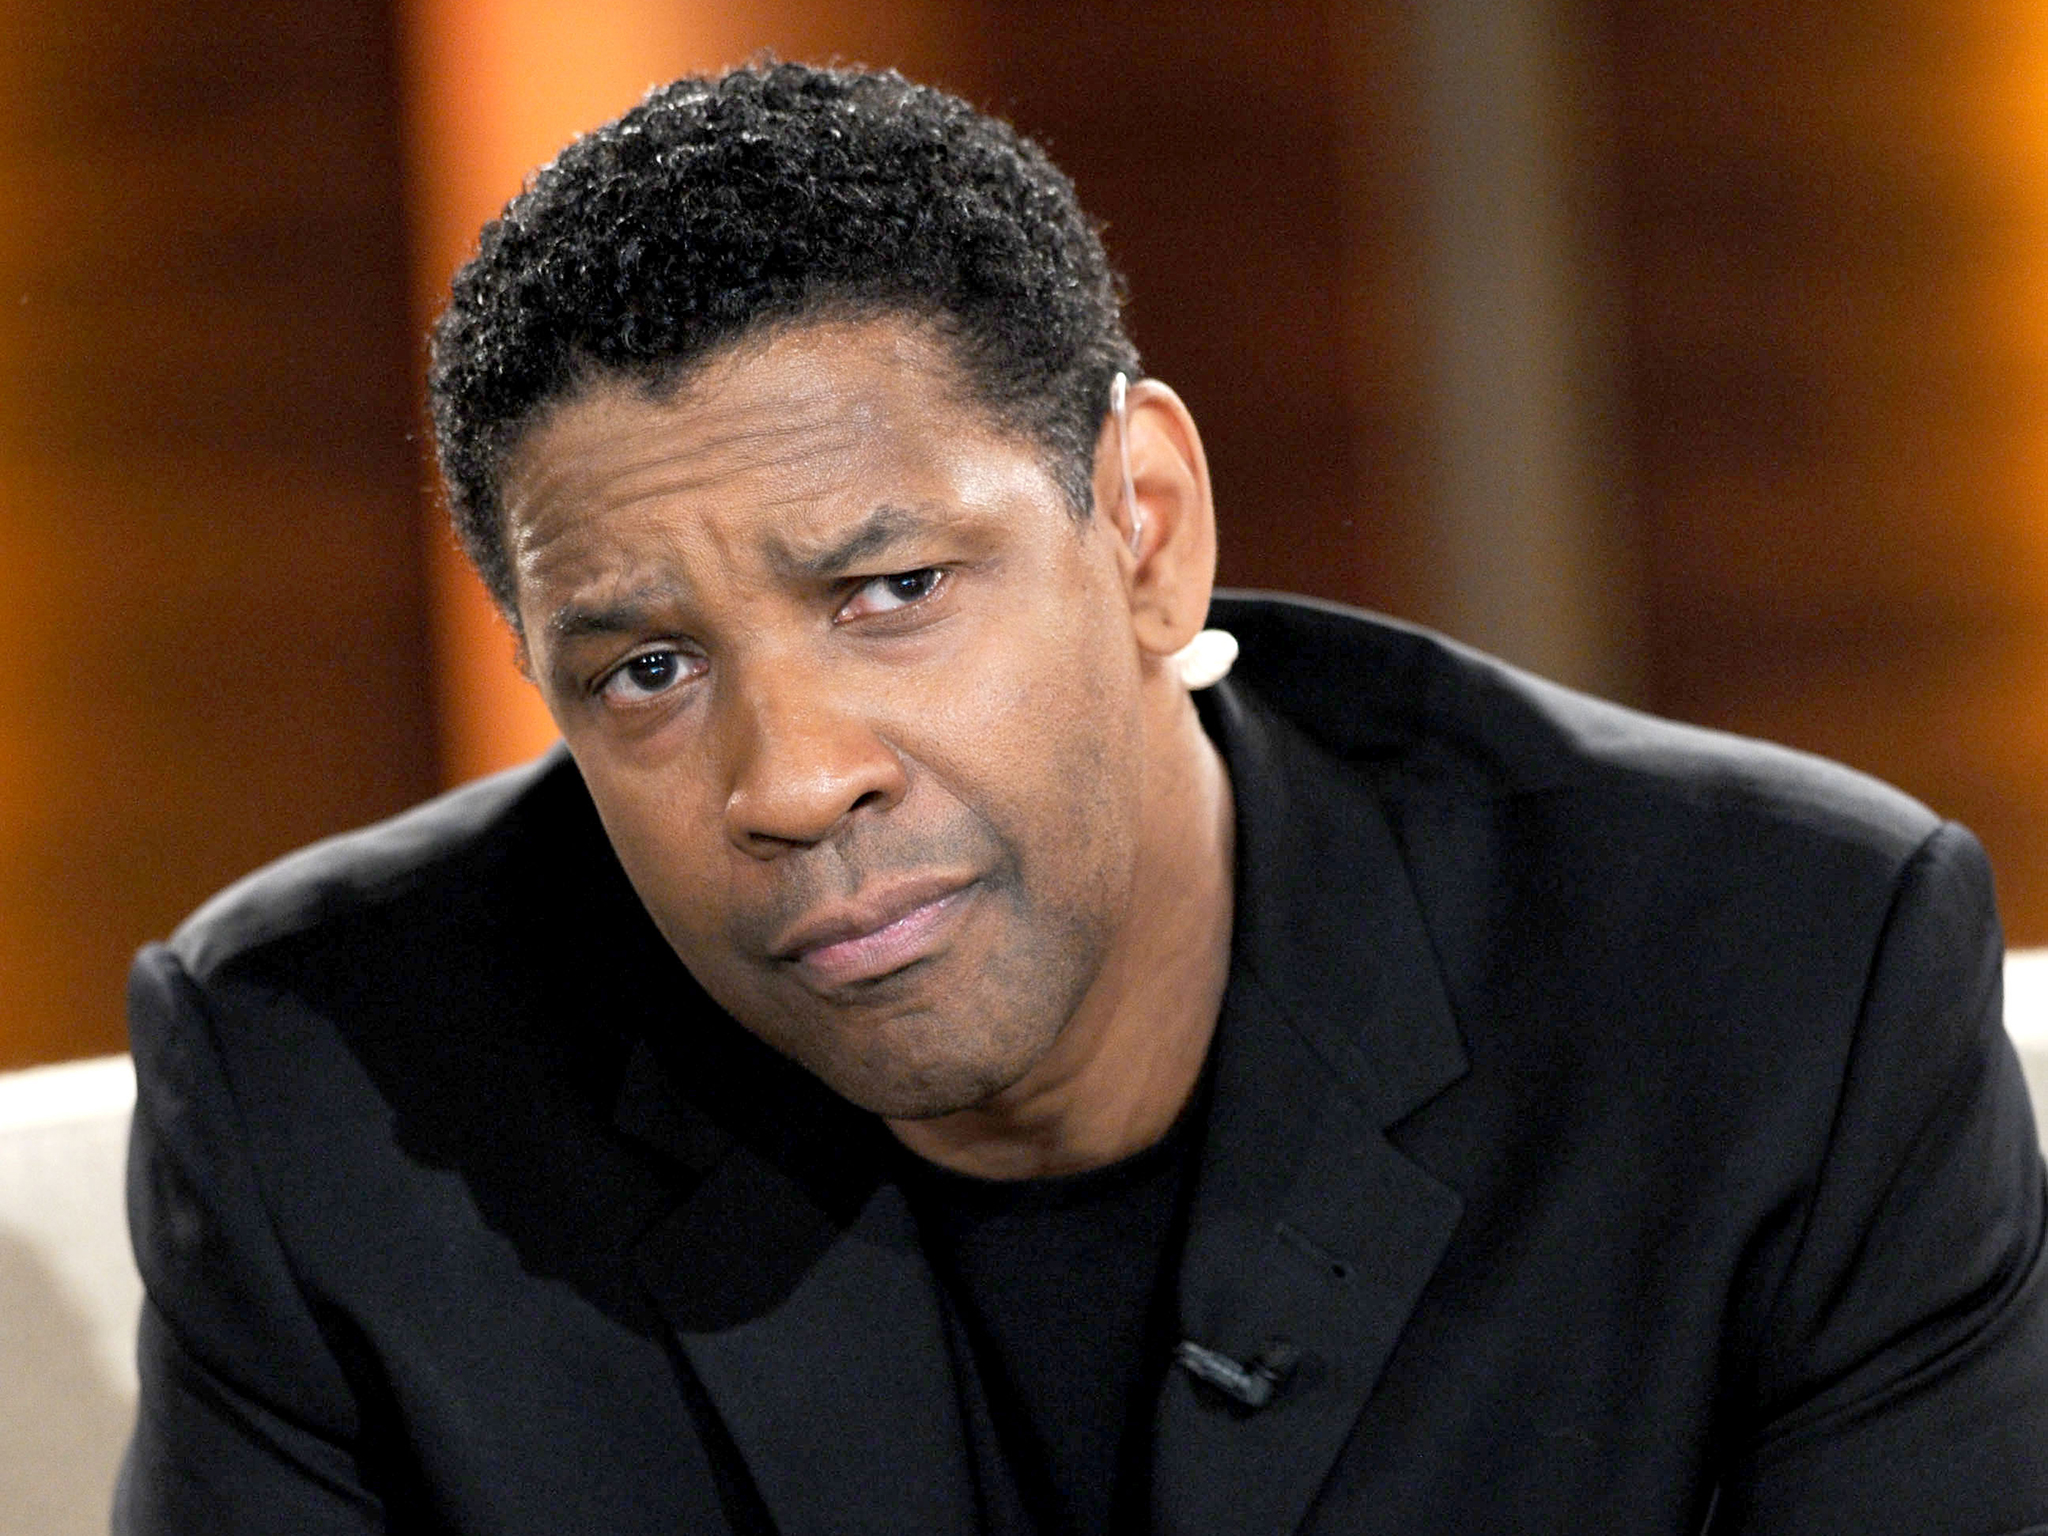 Denzel Washington looking upset